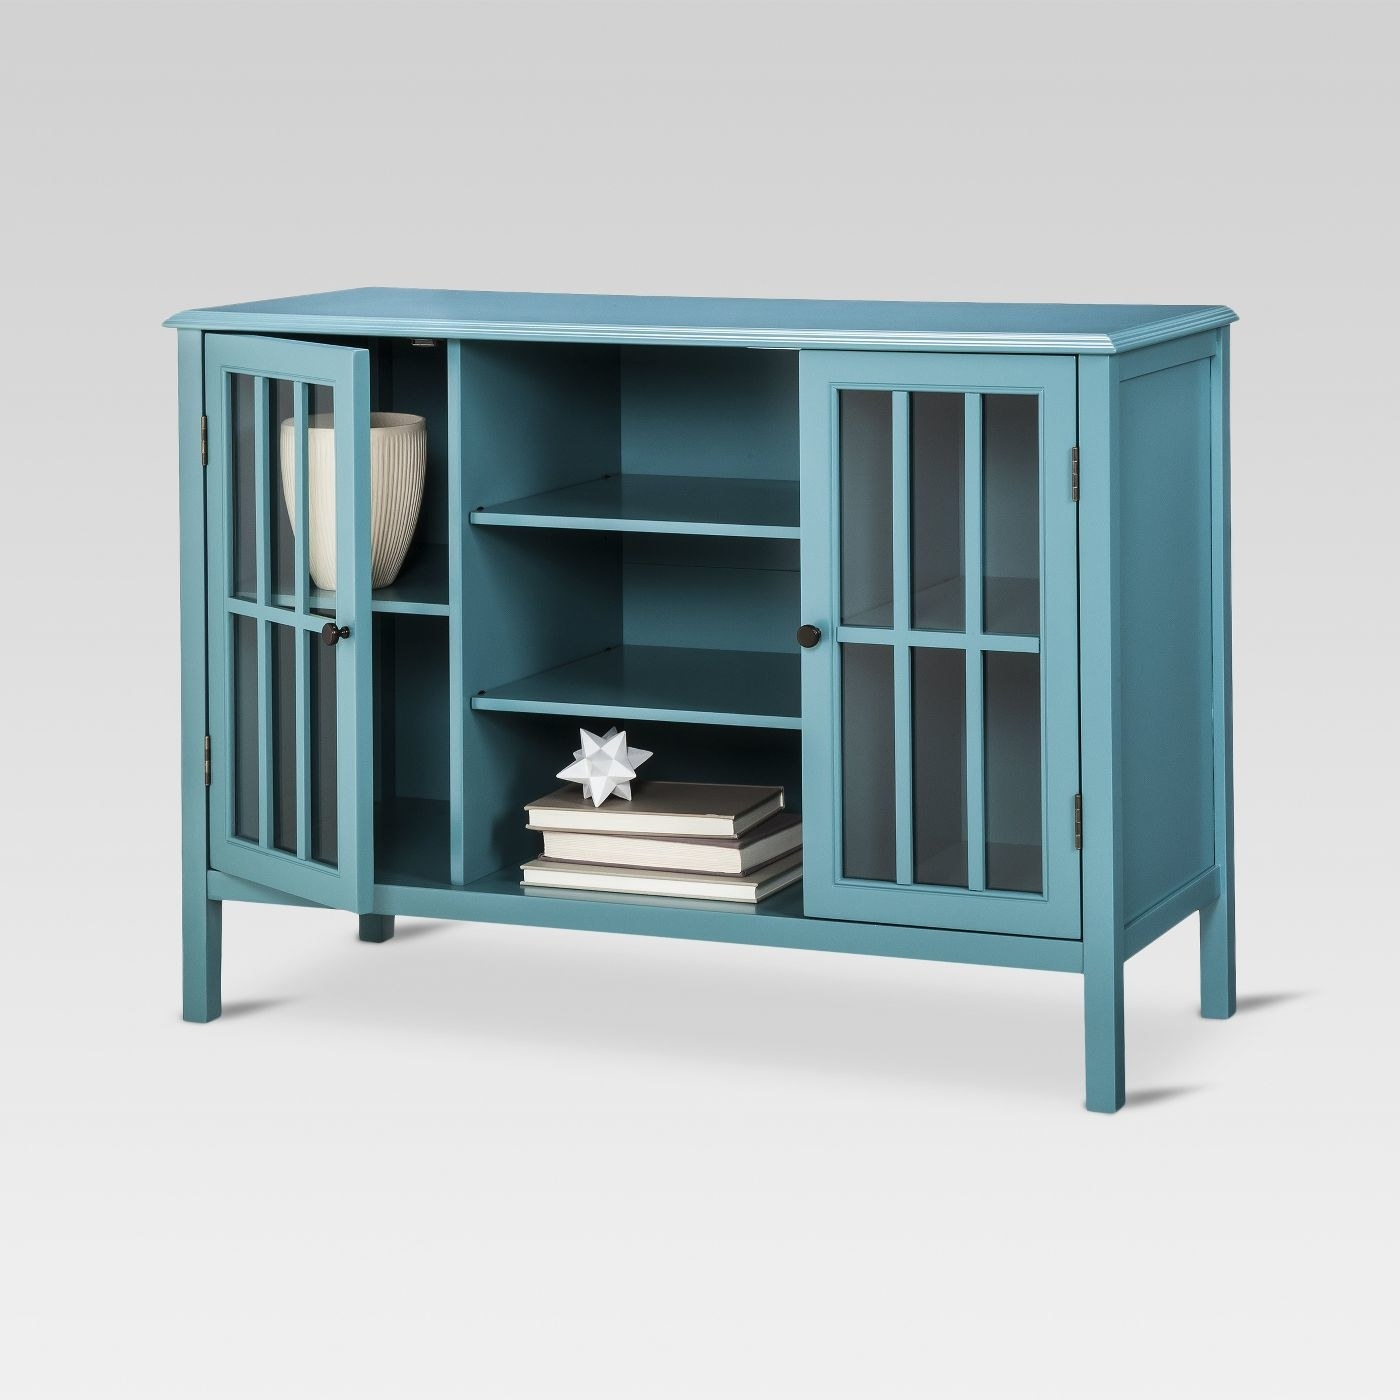 The cabinet in teal, which has four small legs, two cupboard areas on the side with glass-panelled doors, and three shelves in the middle section